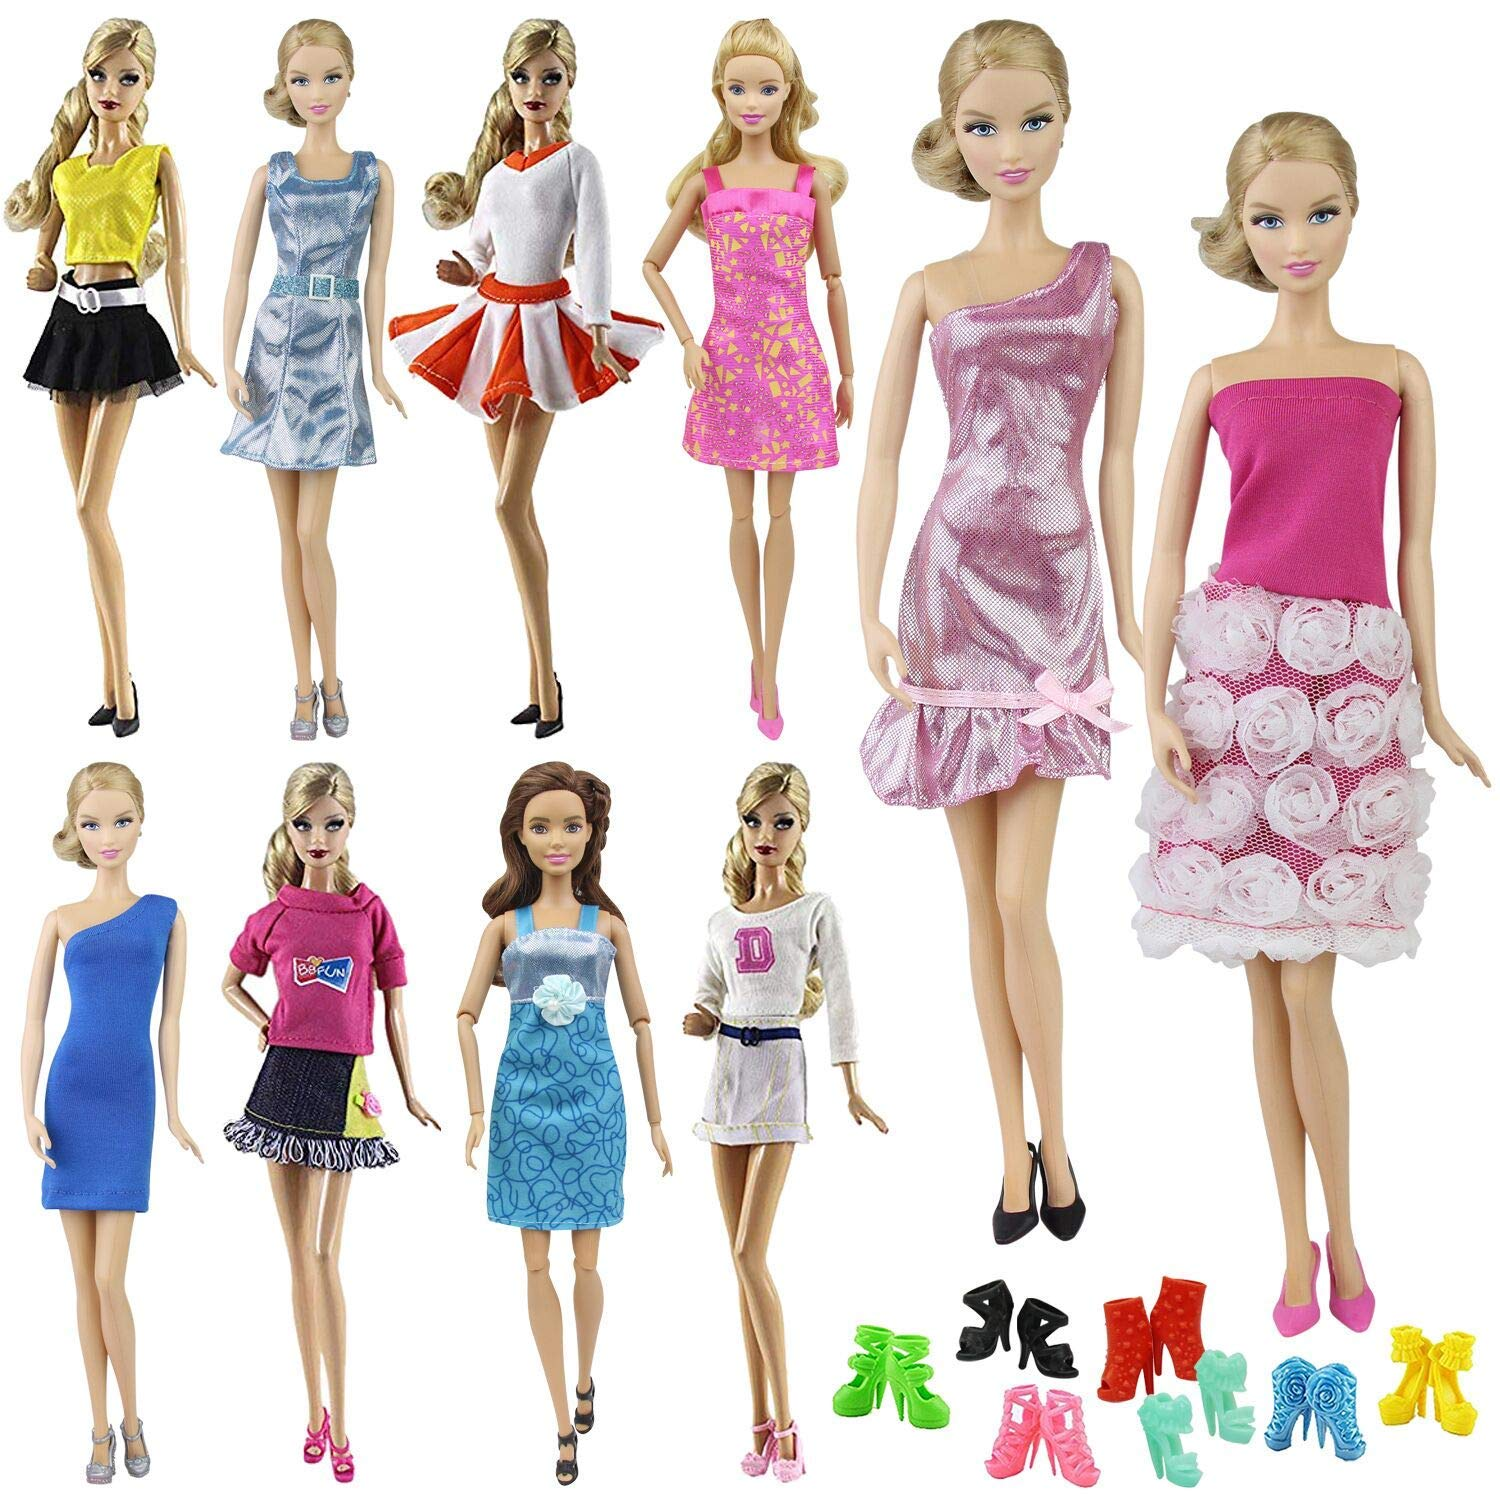 51a301737c7b Amazon.com  ZITA ELEMENT 10 Items   5 Fashion Clothes Dress Outfits + 5  Shoes for 11.5 Inch Girl Doll Accessories - Random Style  Toys   Games